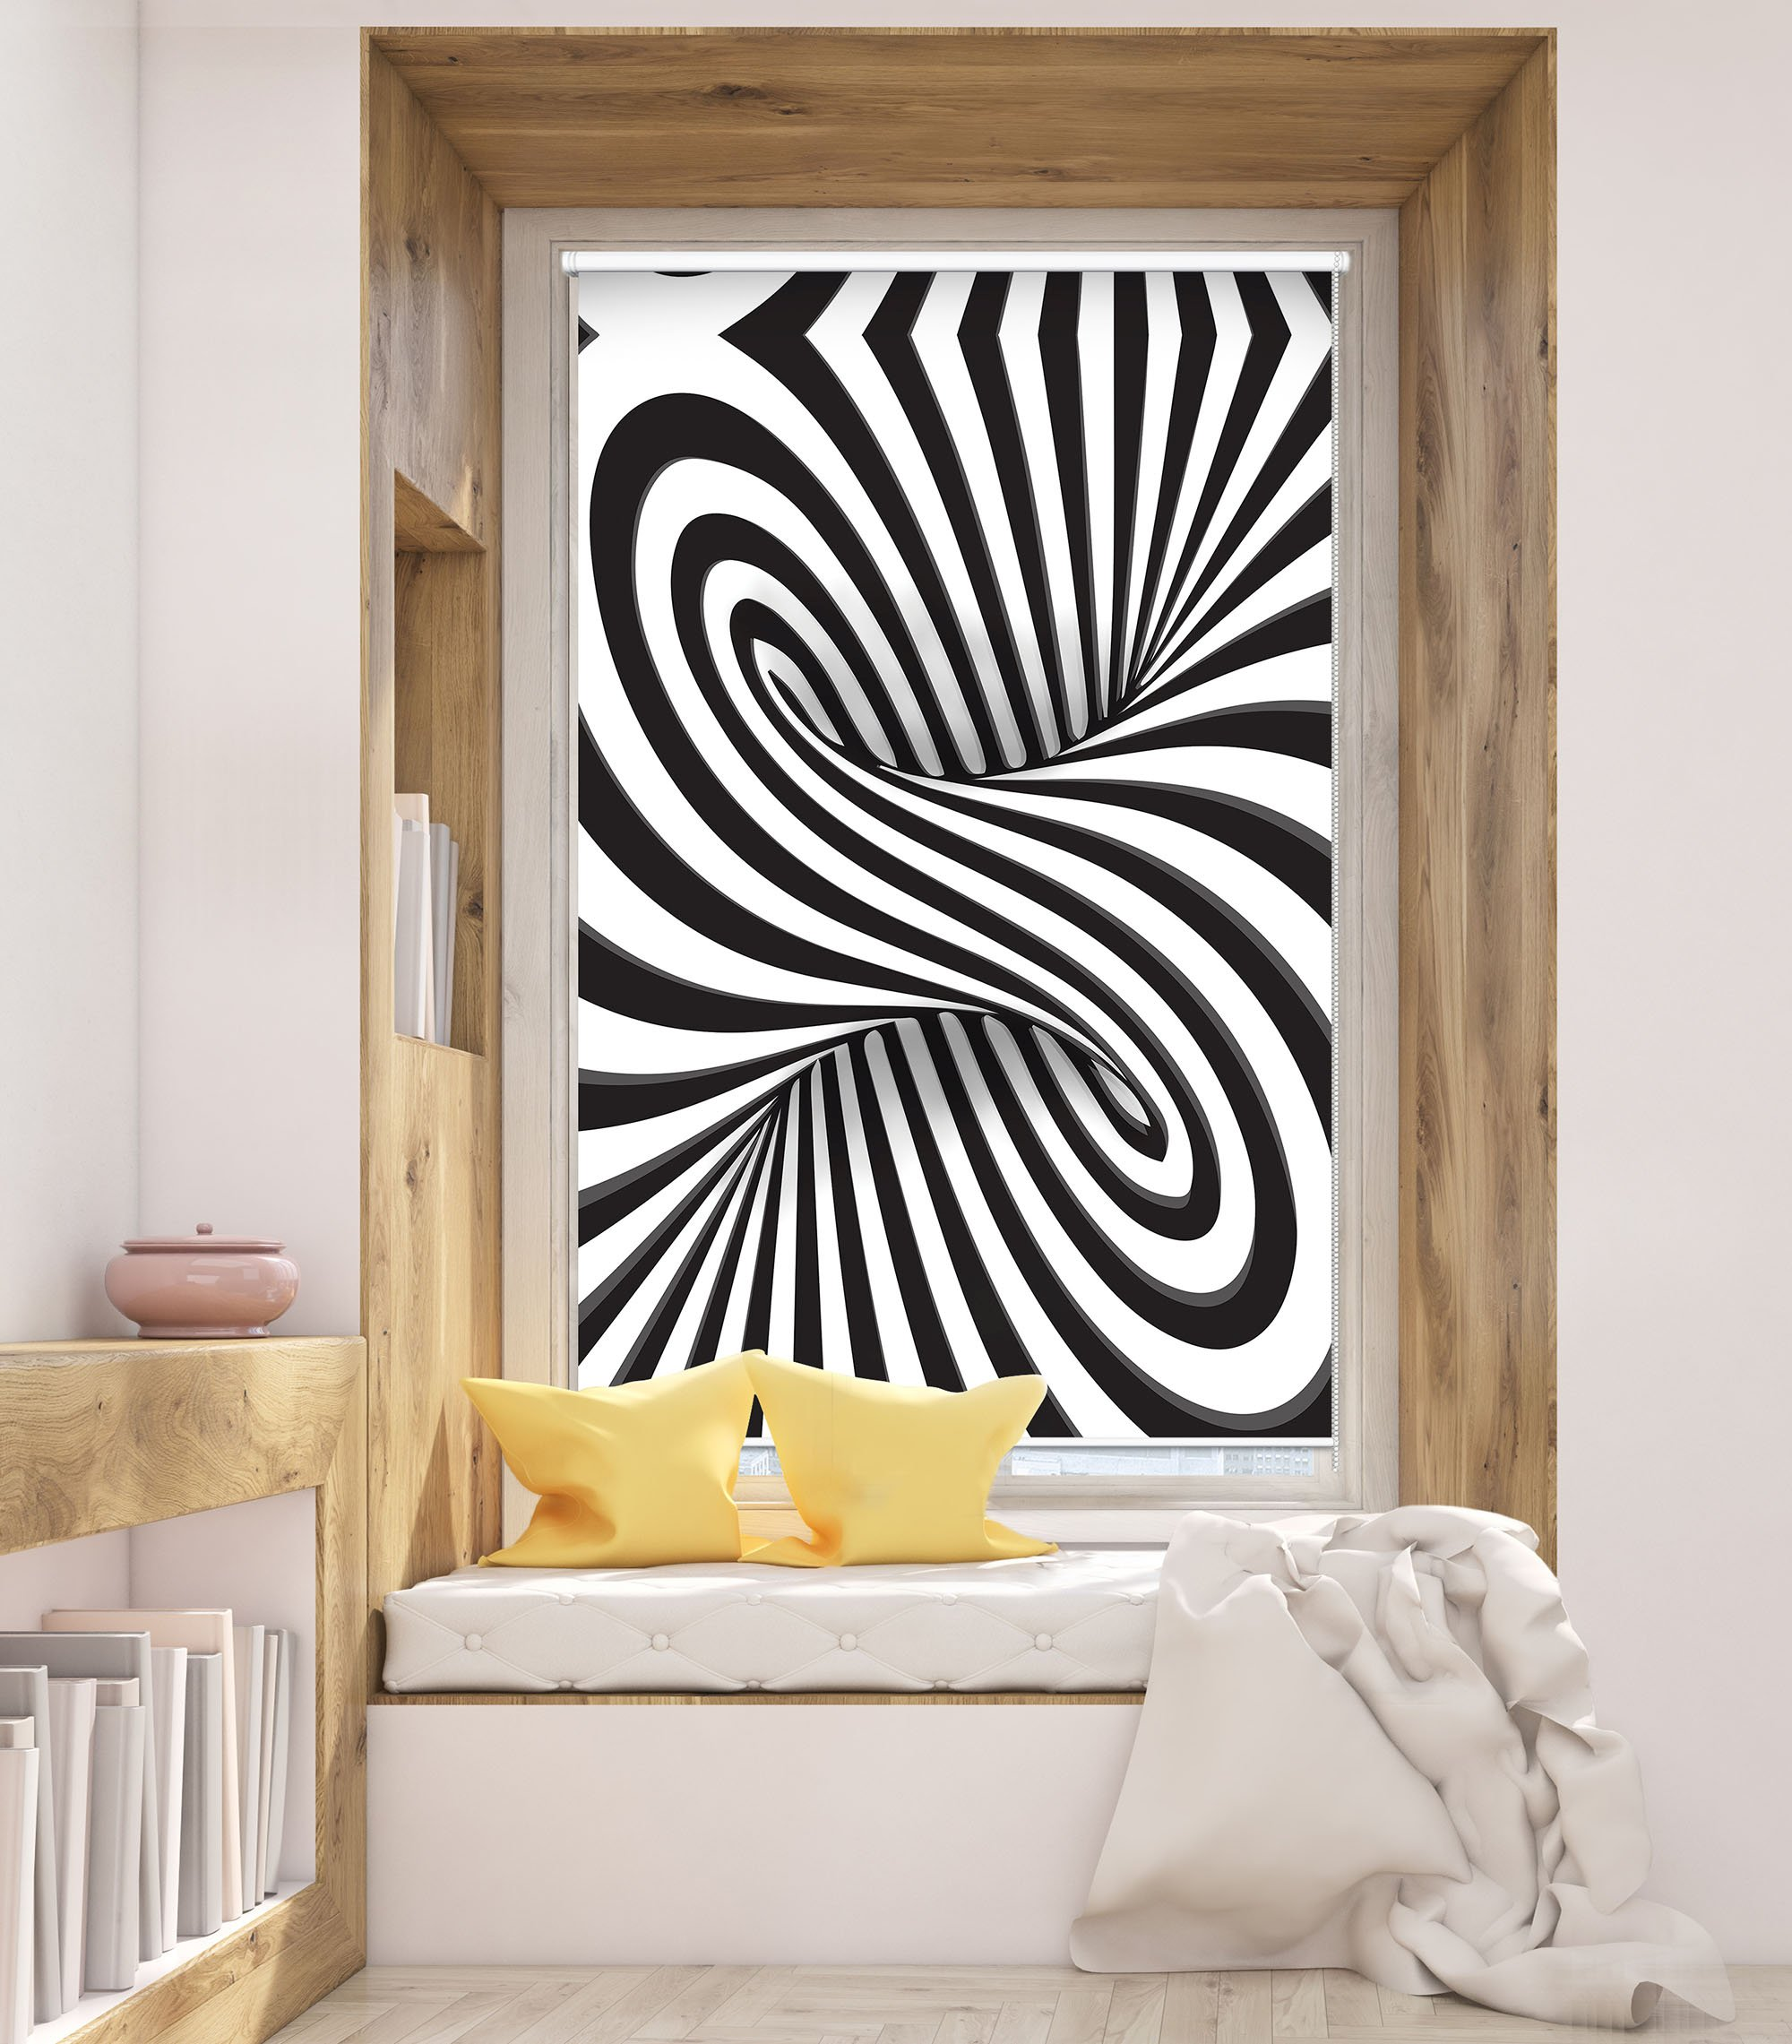 3d Black And White Swirl